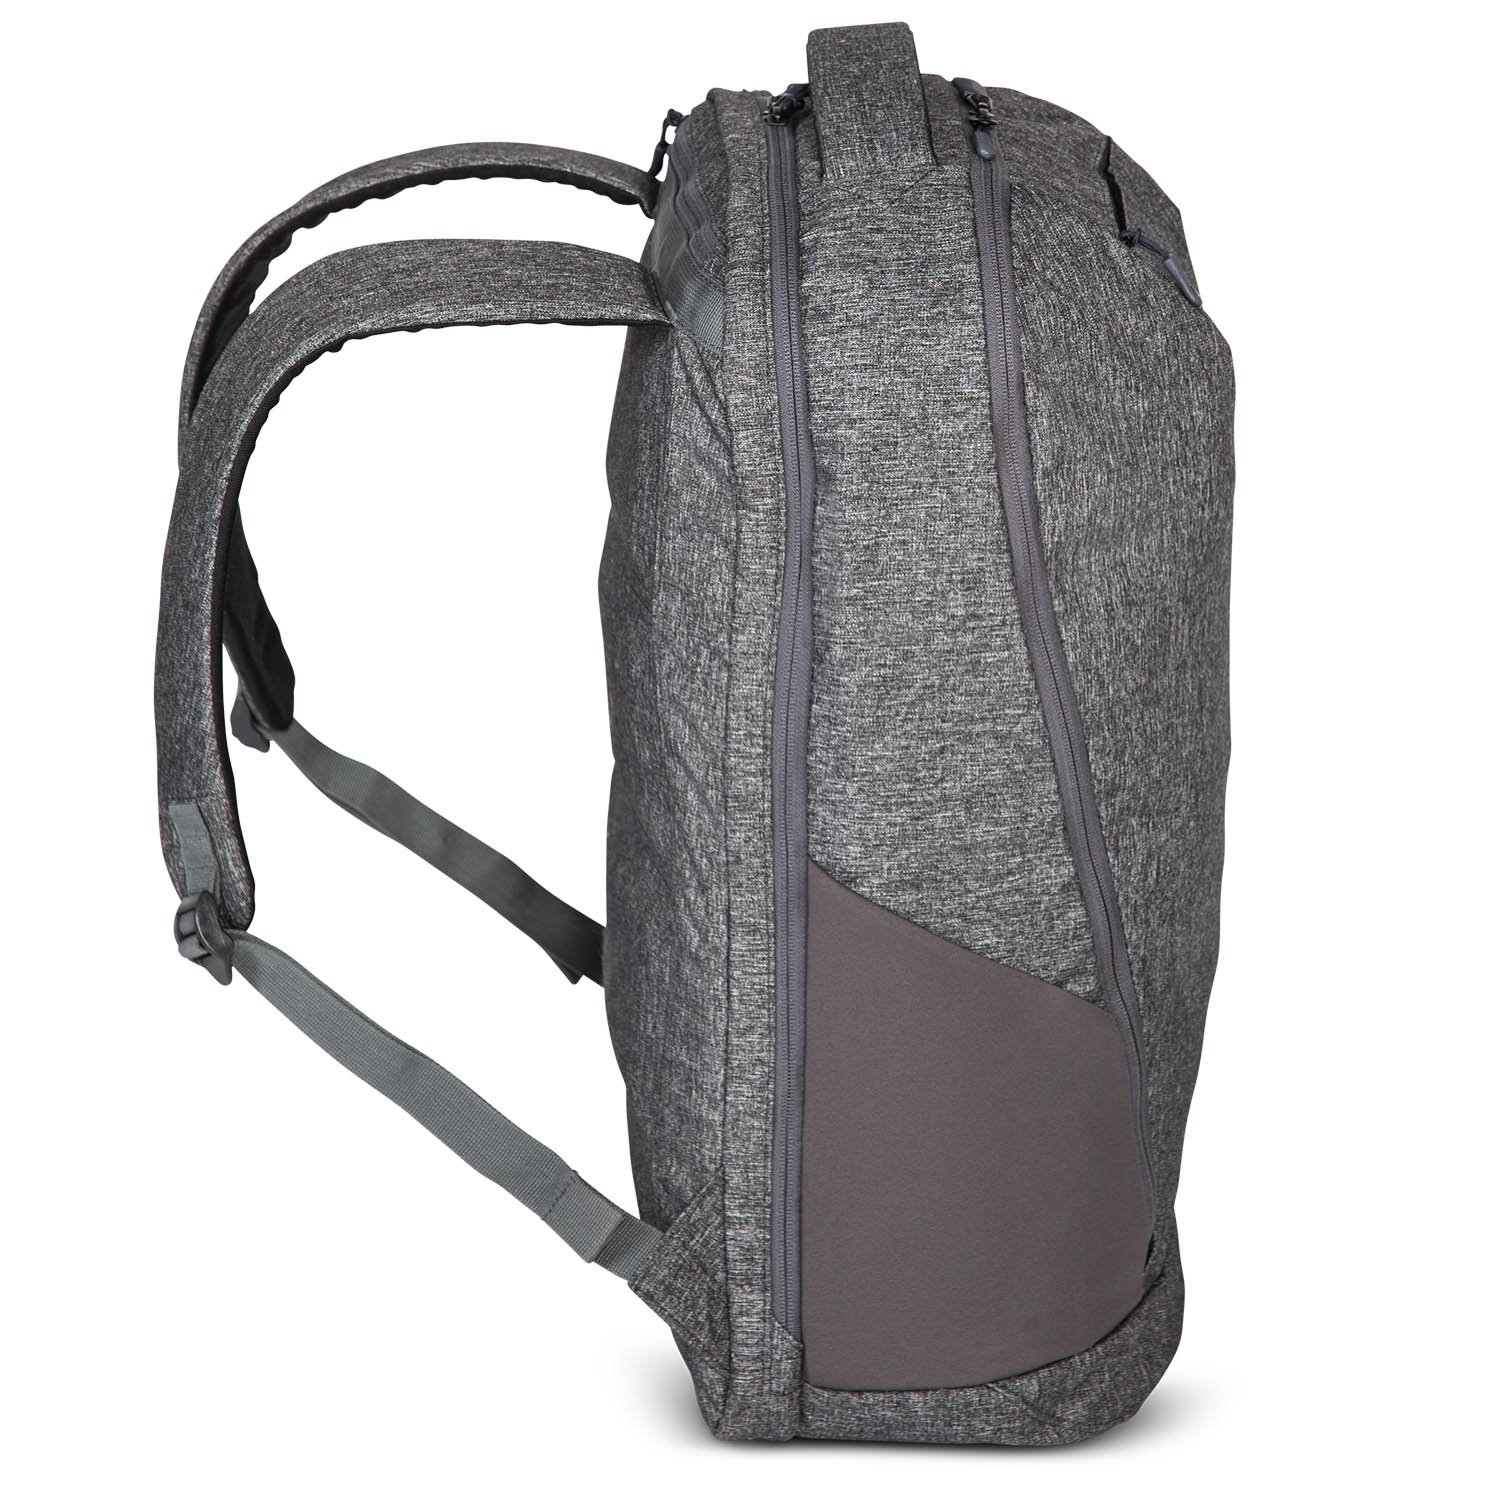 c4b4c1d870c3 Arcido Faroe Backpack   55 x 35 x 20cm Hand Luggage Carry On Size Backpack  with Adaptable Laptop Compartment up to 15